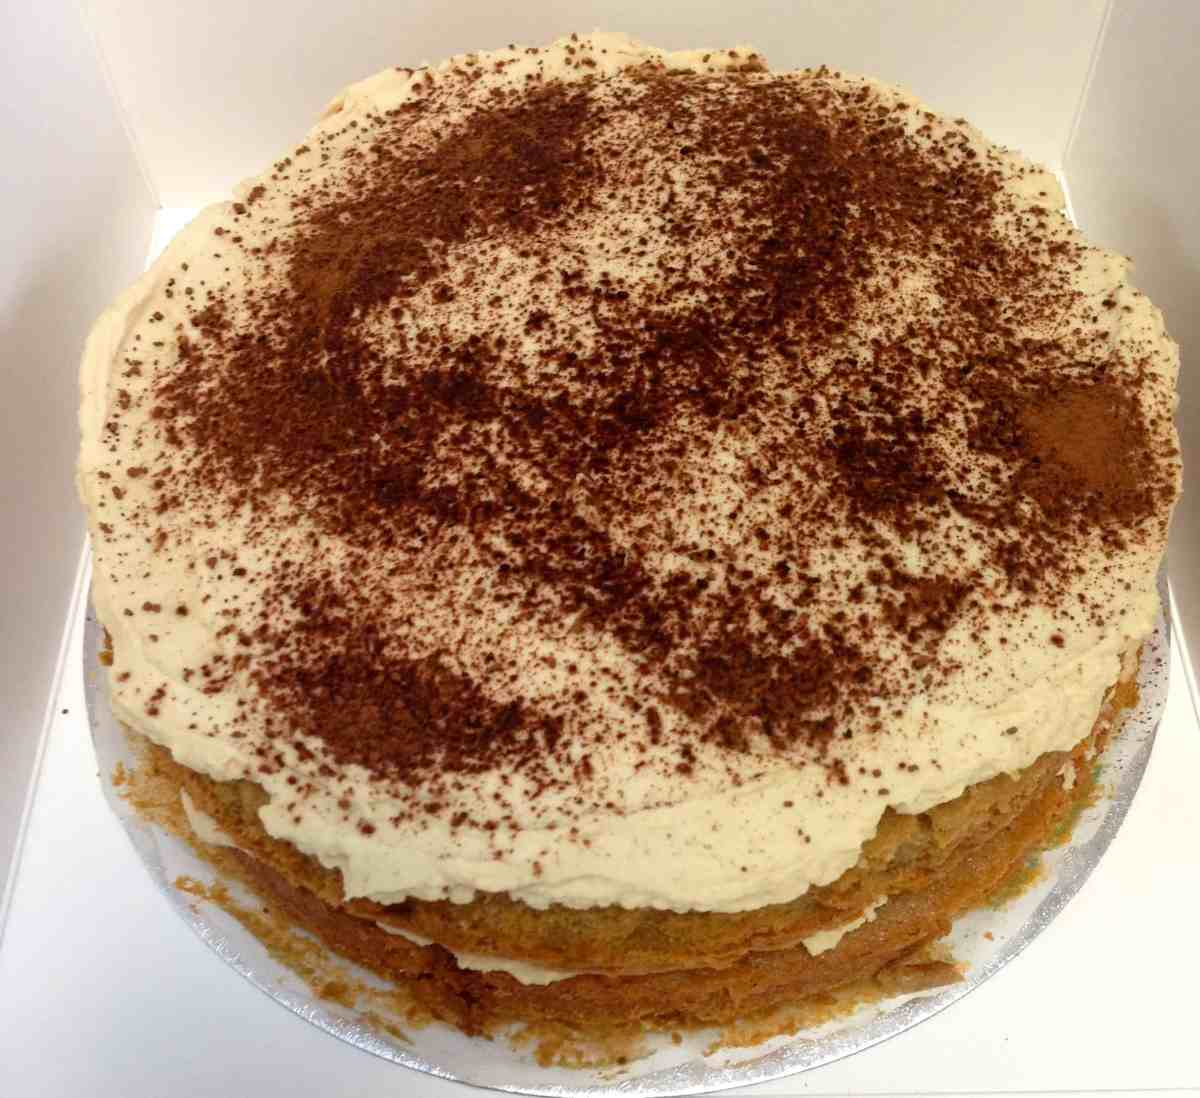 Capuccino Cake by The Late Chef